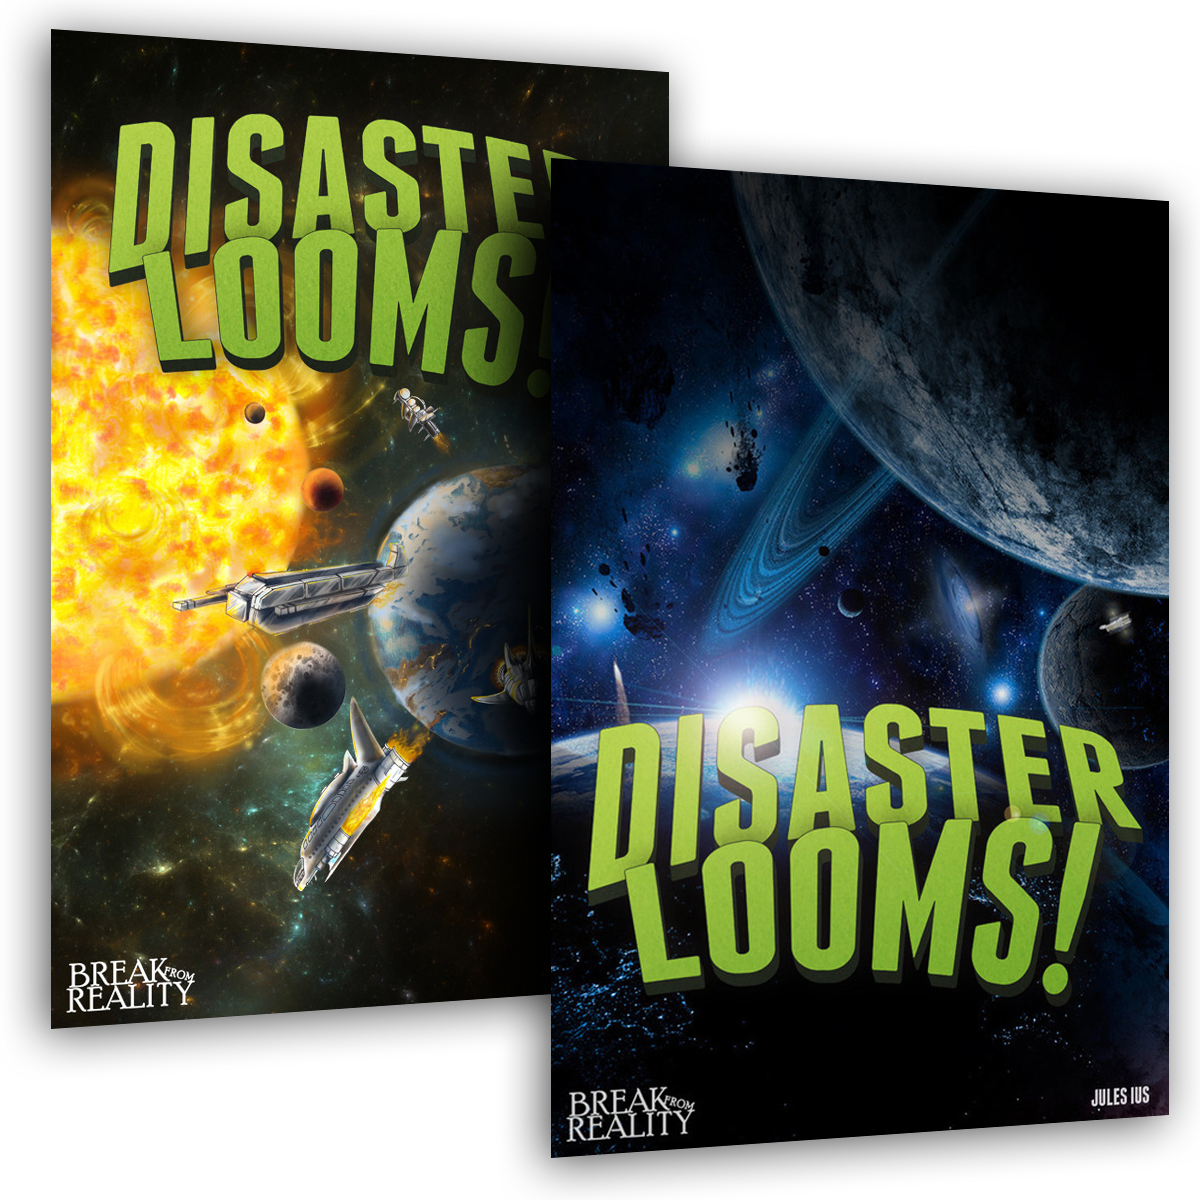 Disaster_Looms_Posters